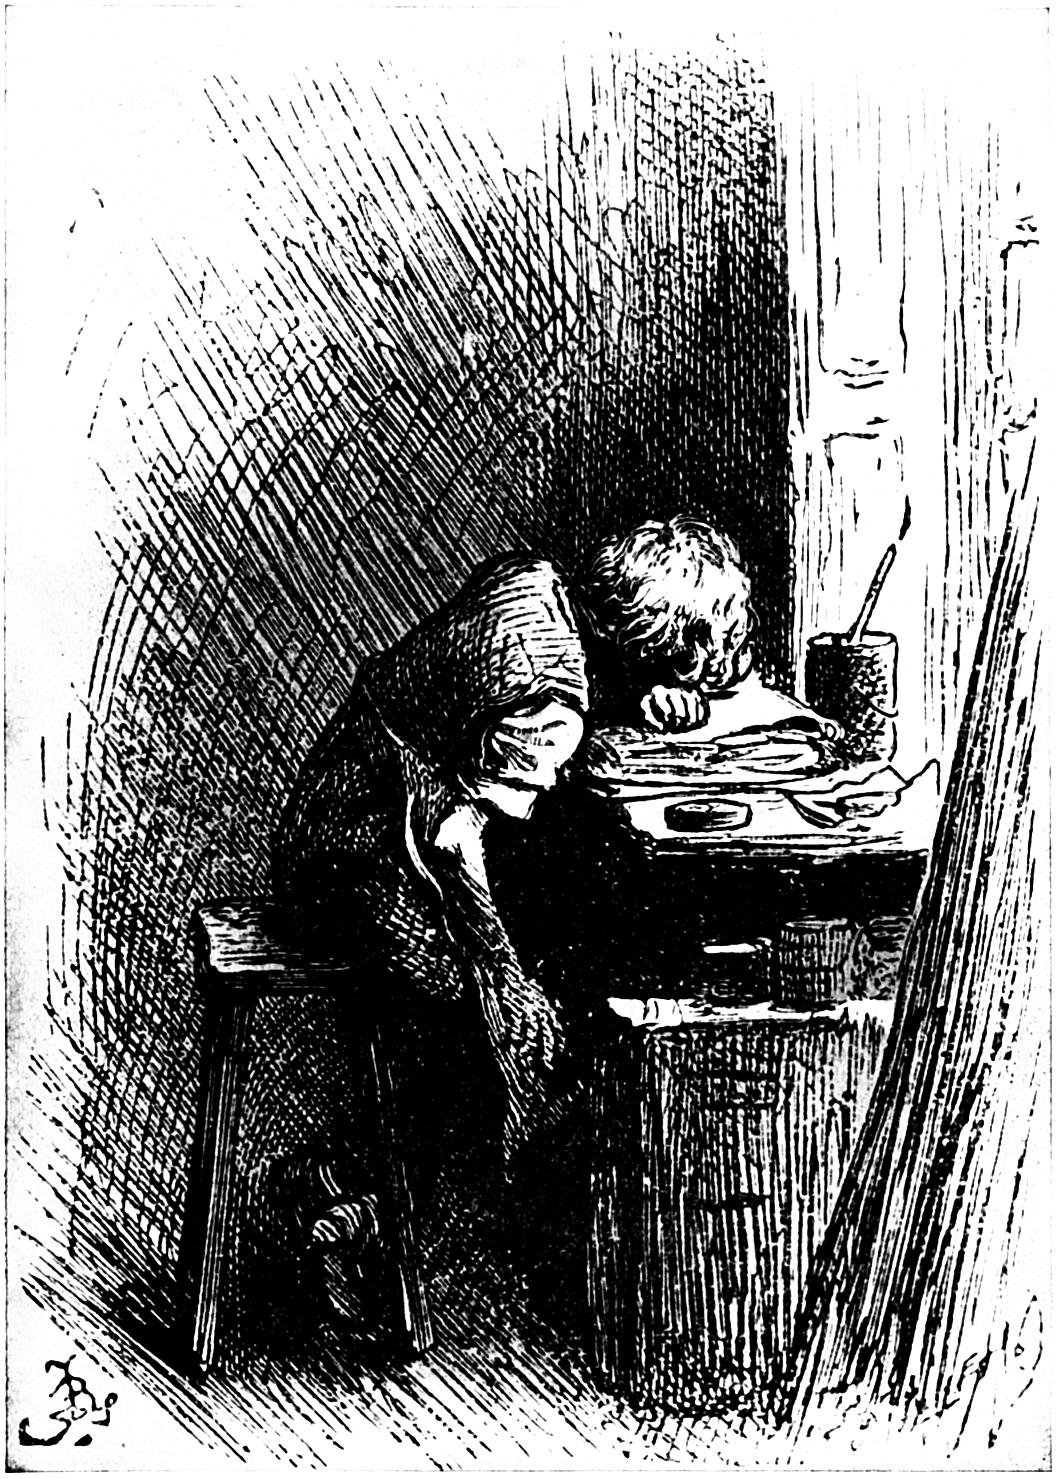 Dickens at the Blacking Warehouse. Charles Dickens is here shown as a boy of twelve years of age, working in a factory